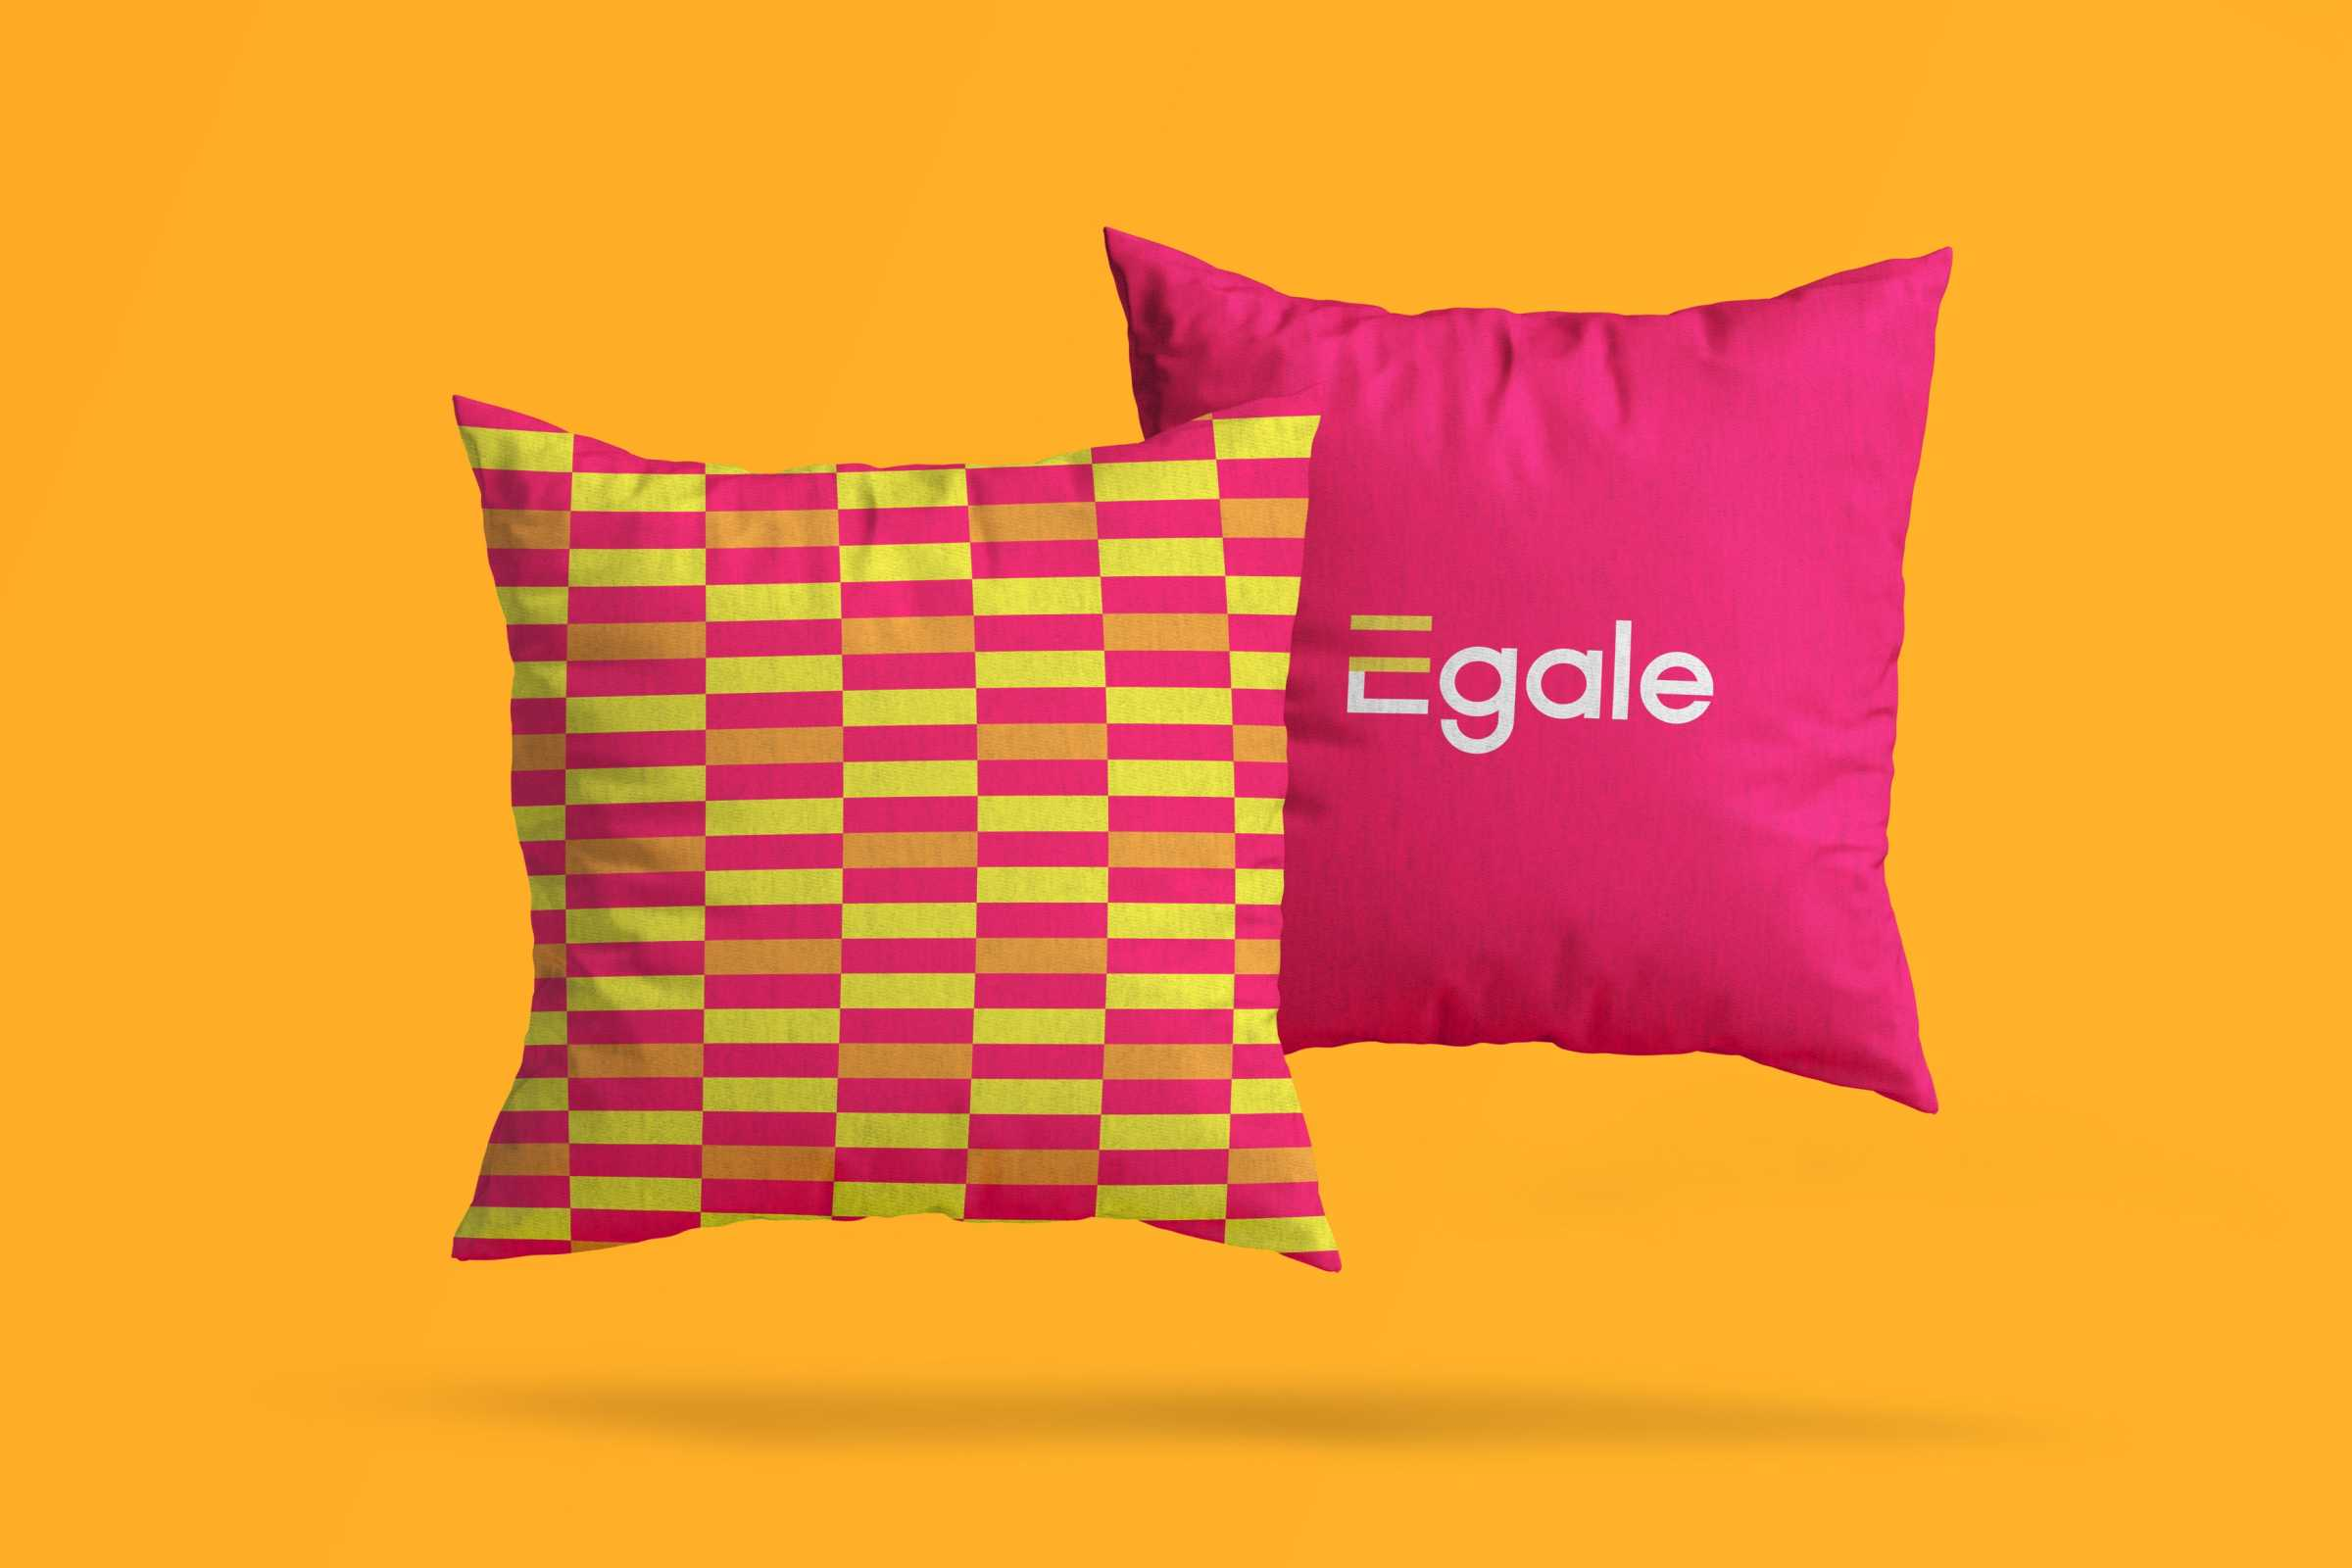 8-Egale Pillows Mockup